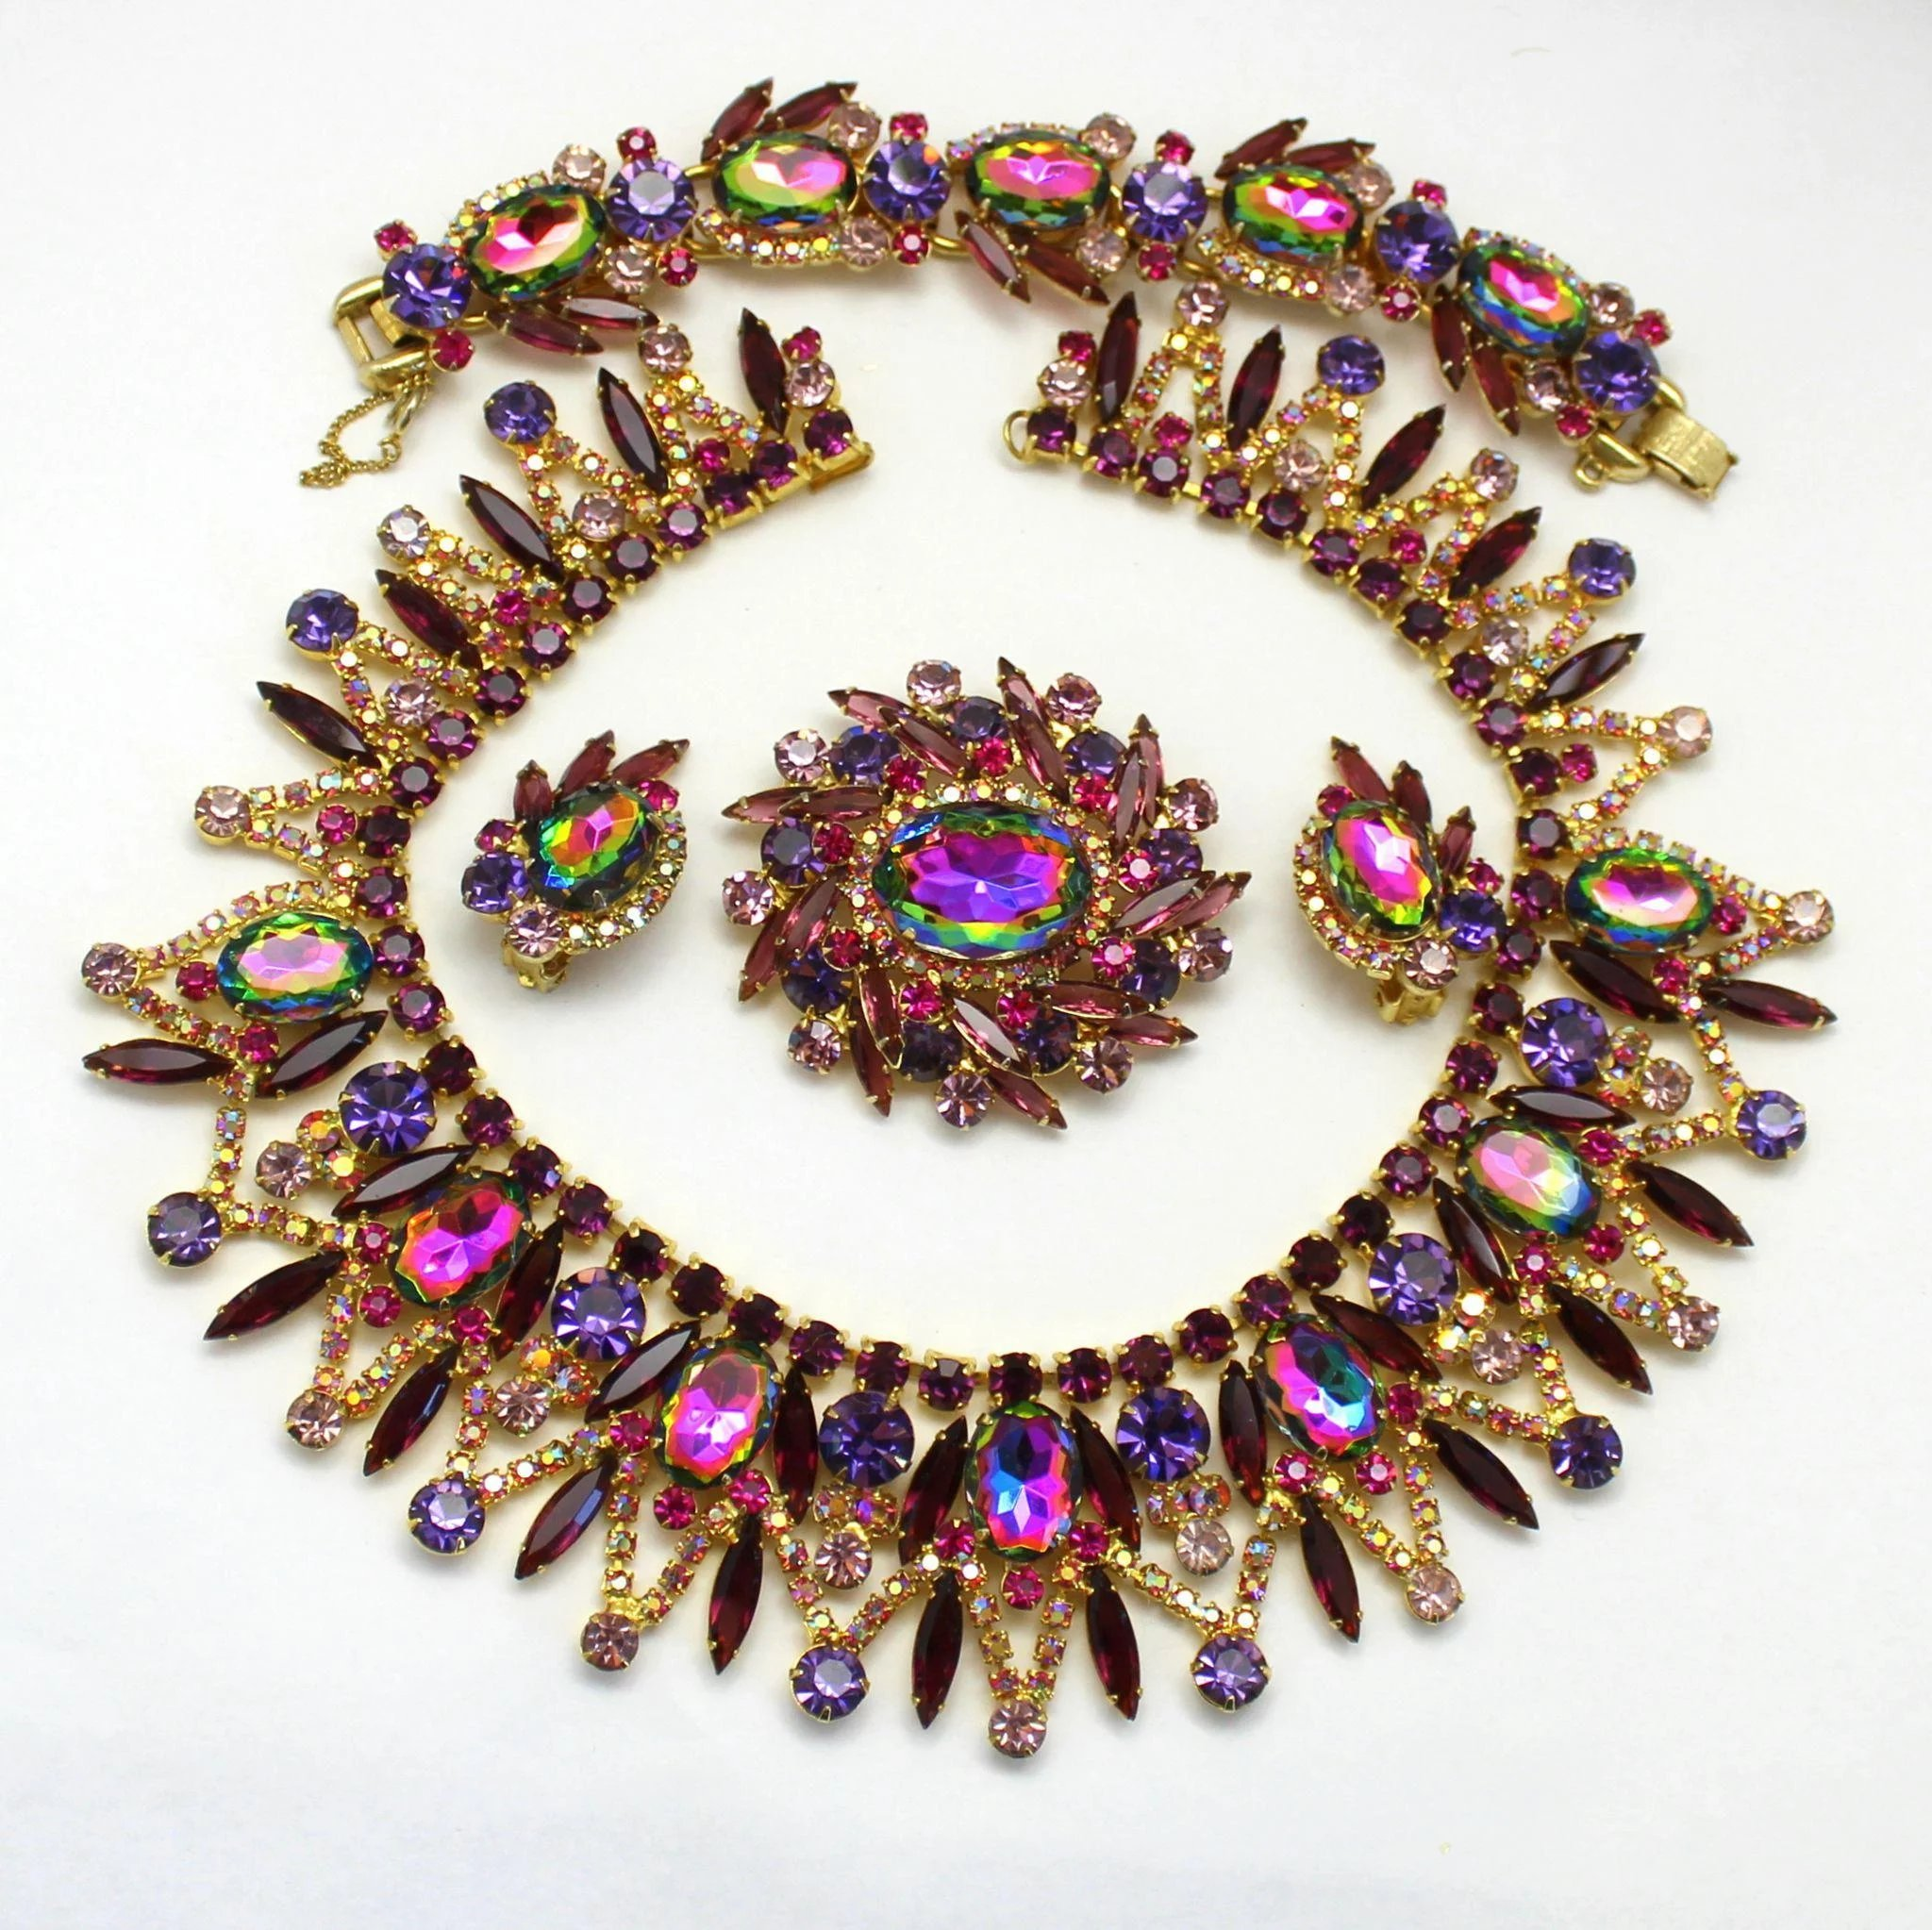 lot diamond sapphire pendent brooch buccellati a necklacebrooch and lotfinder hgk details by necklace